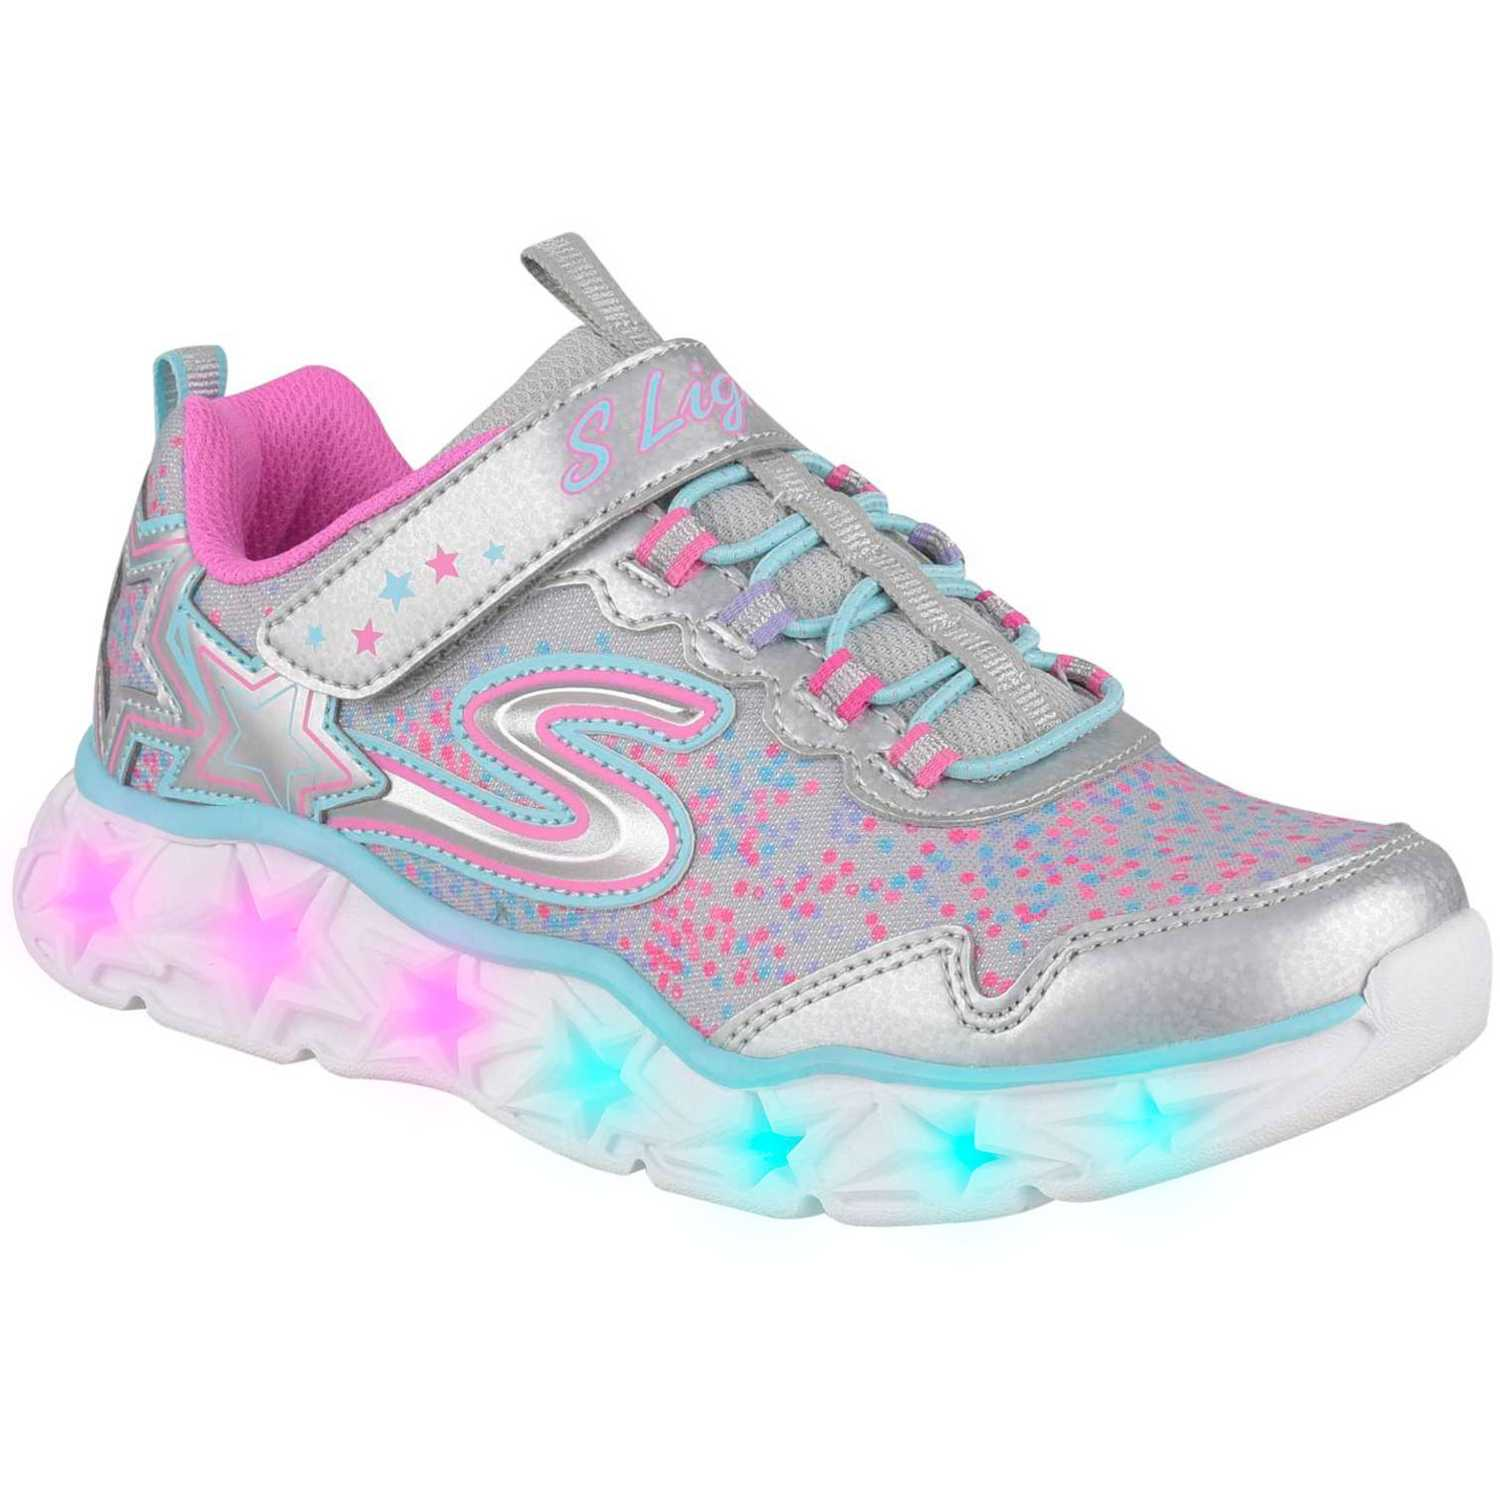 a756124d0 Zapatilla de Niña Skechers Plateado / rosado galaxy lights ...